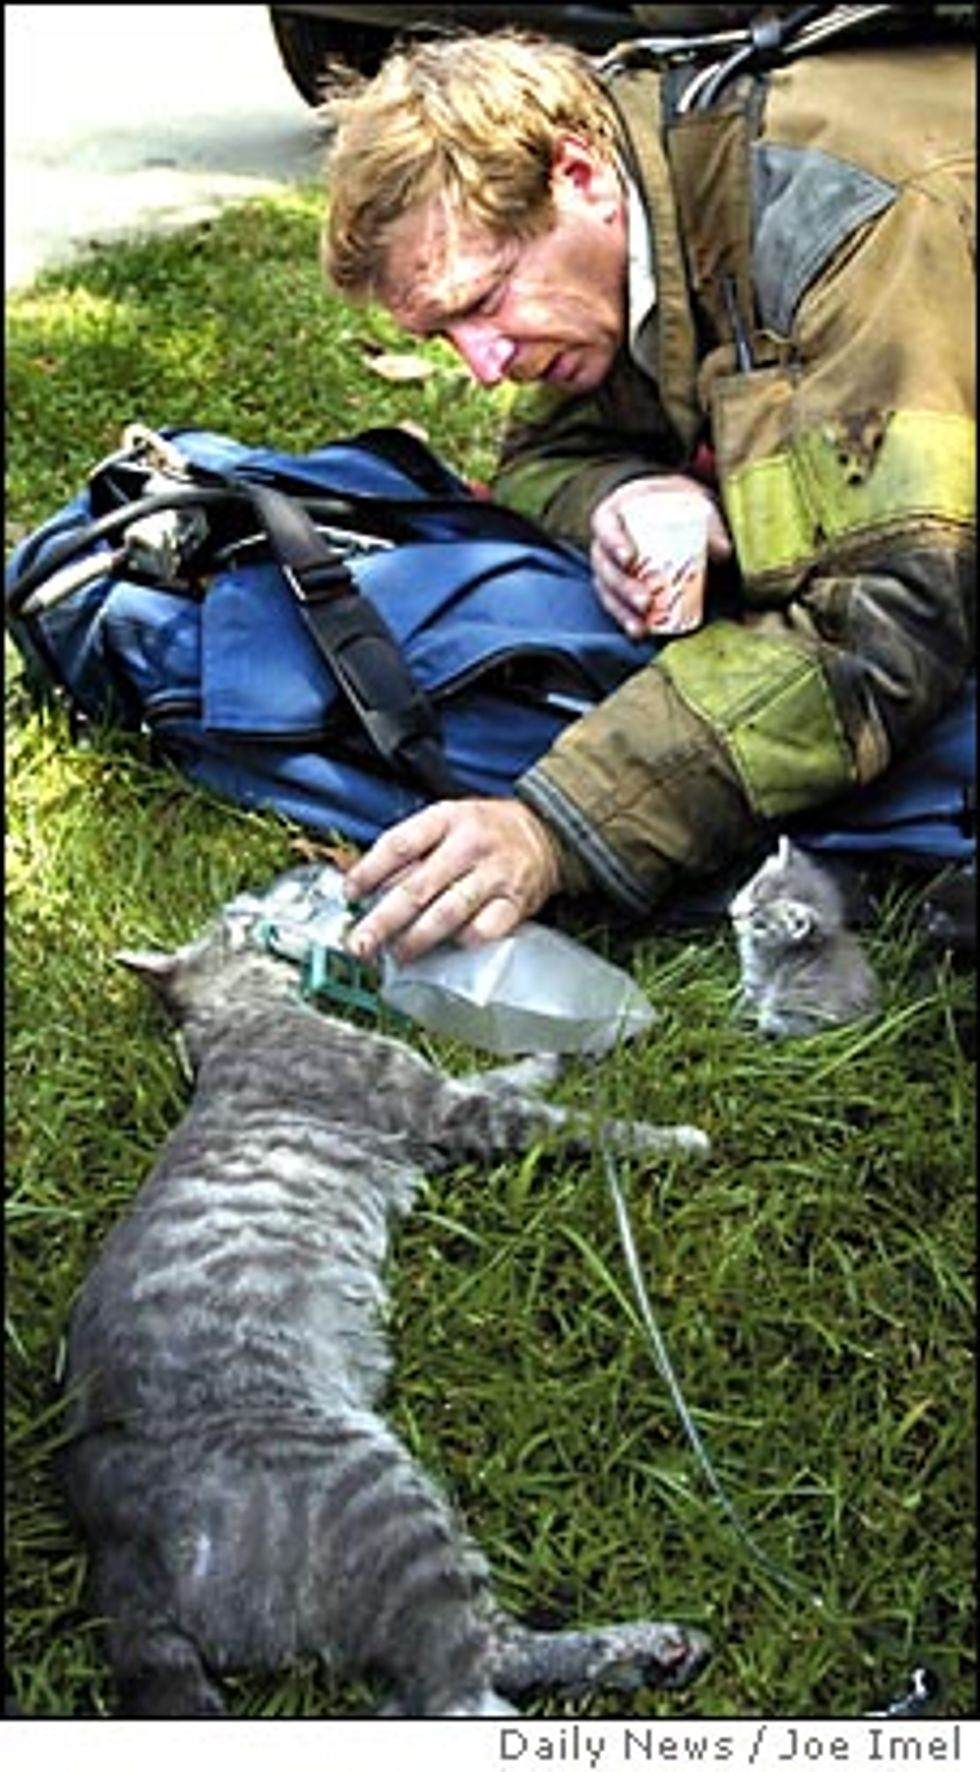 Firefighter Rescued Cat from Flames